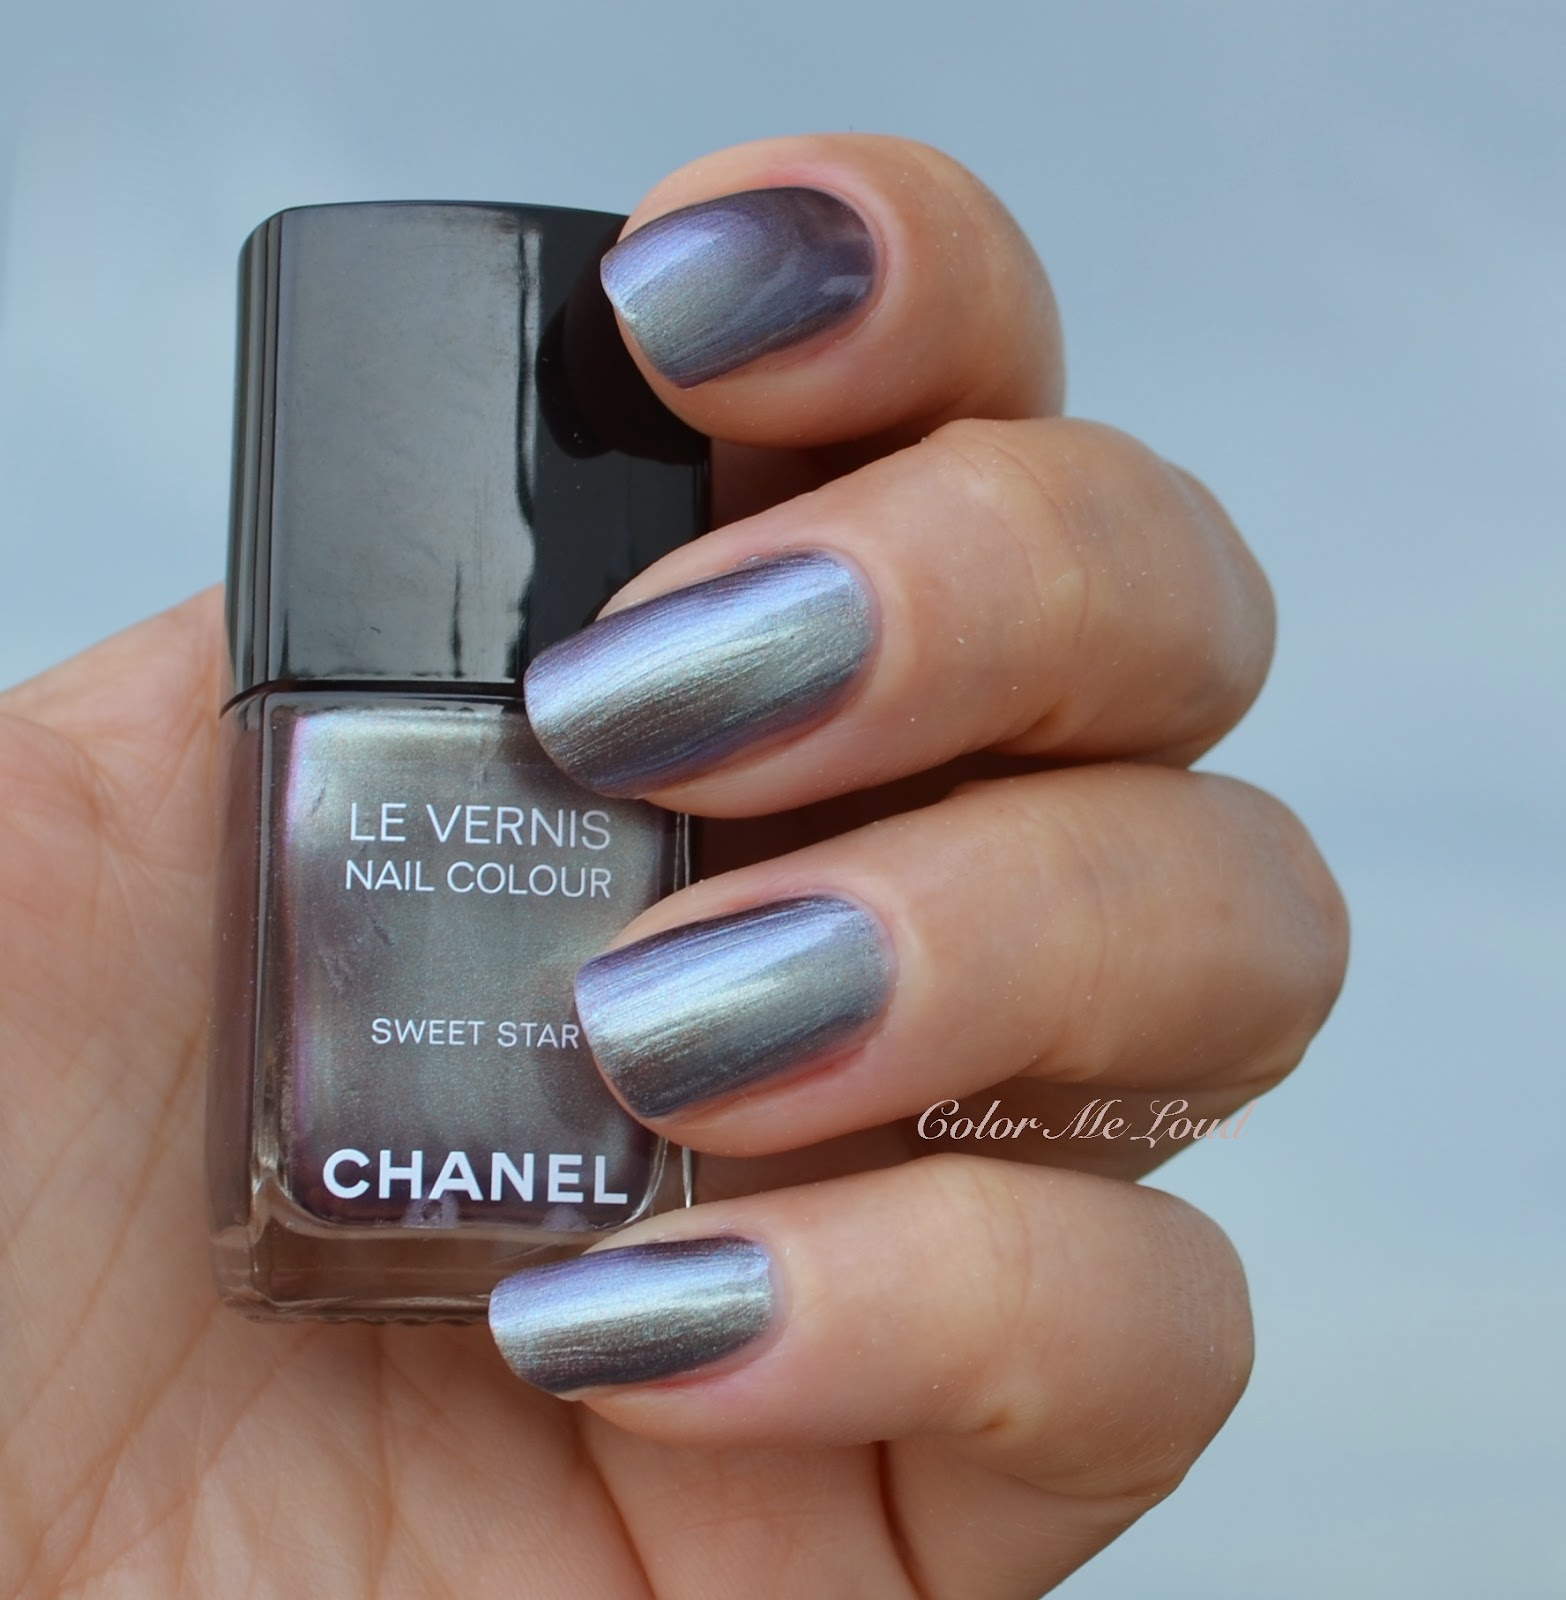 Chanel Le Vernis Sweet Star For Fashion Night Out 2014 Nail Polishes Review Swatch